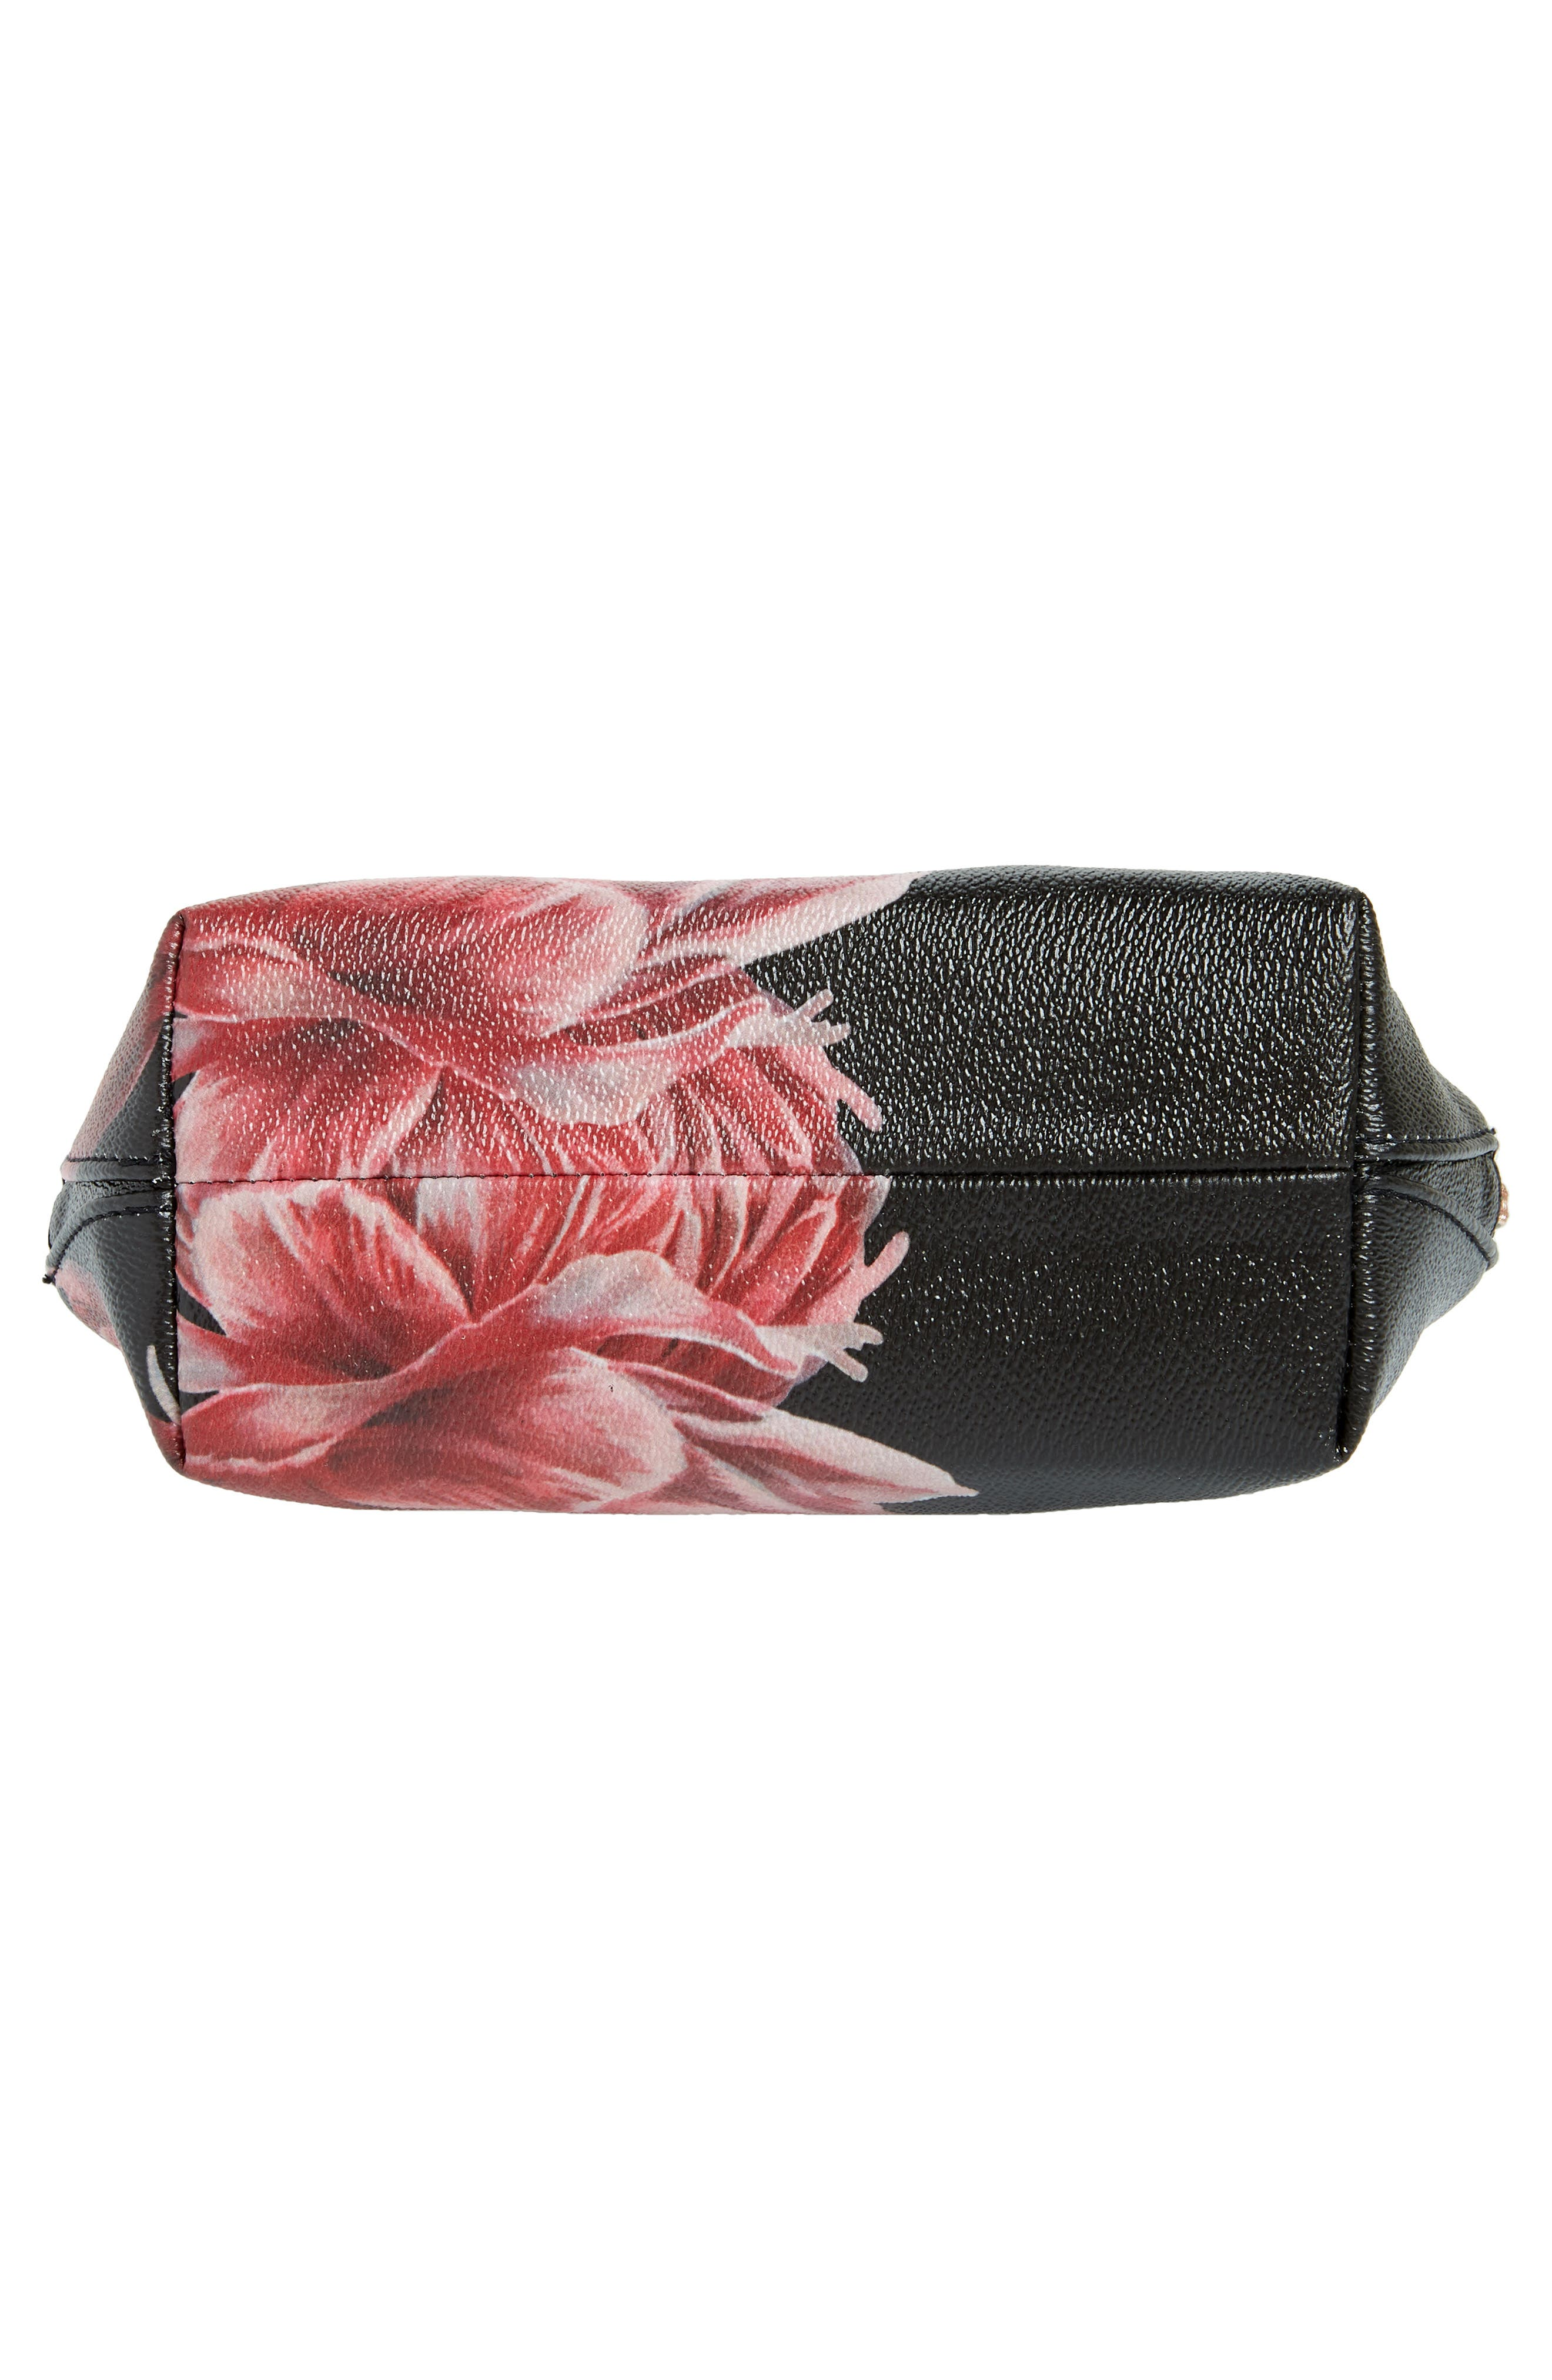 Tranquility Cosmetics Case,                             Alternate thumbnail 5, color,                             Black